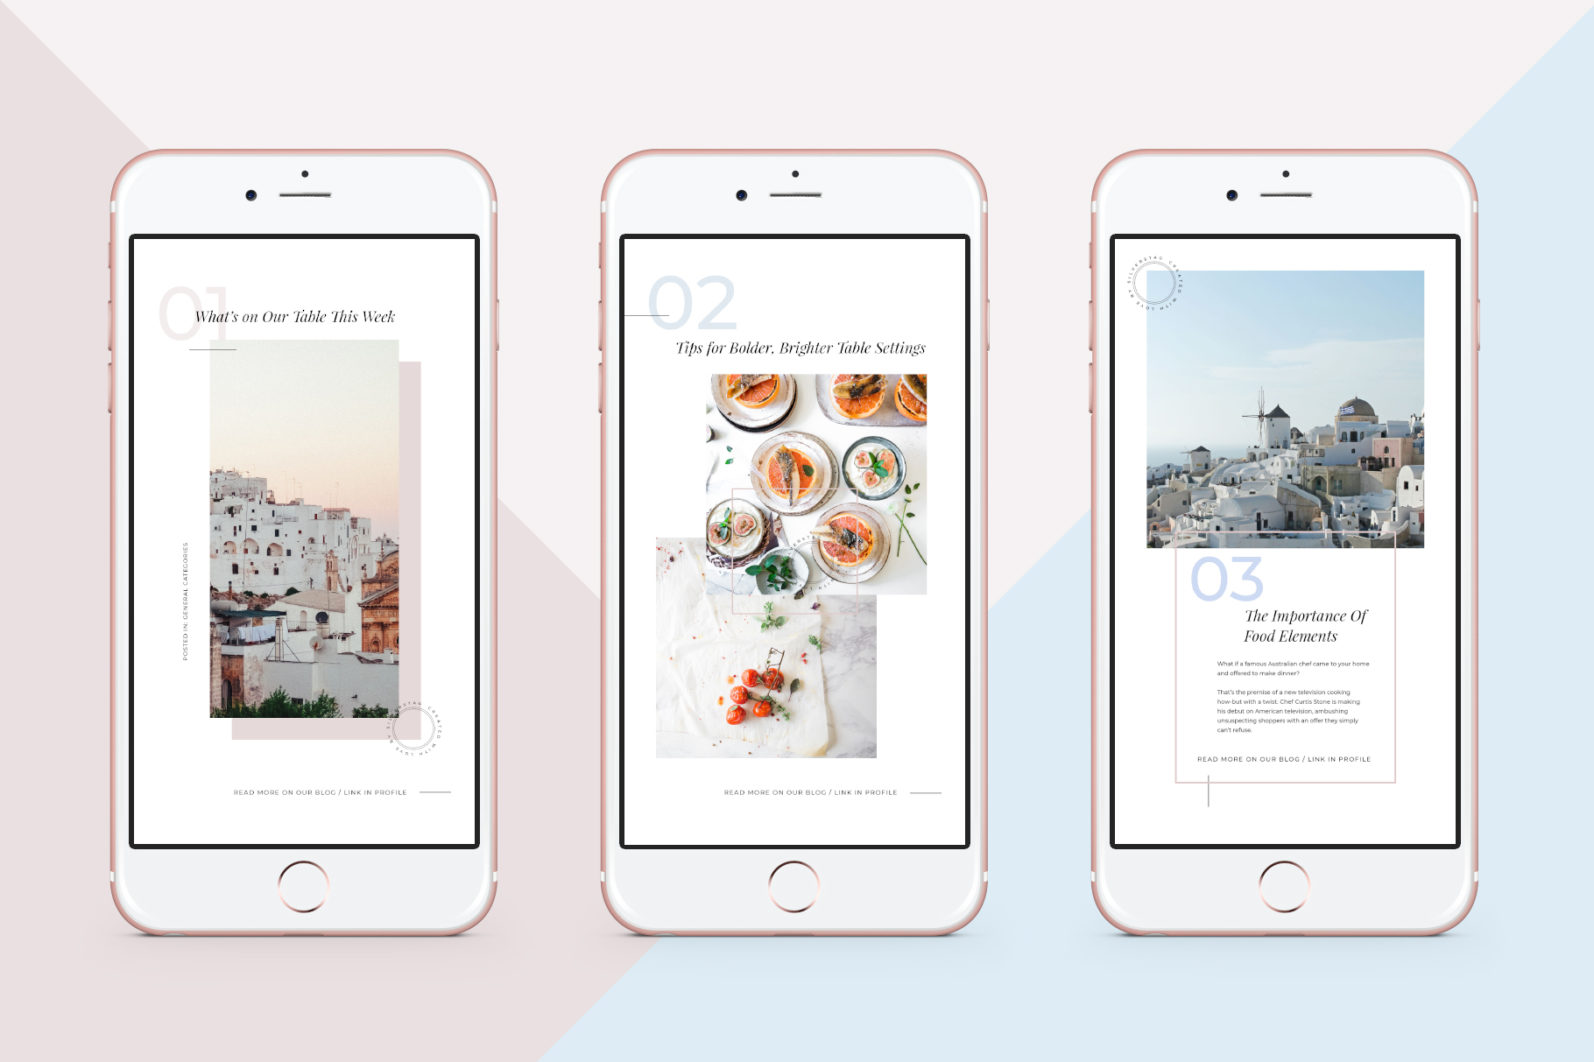 CANVA Modern Instagram Stories Pack - 01 animated modern food travel instagram stories pack 1 -